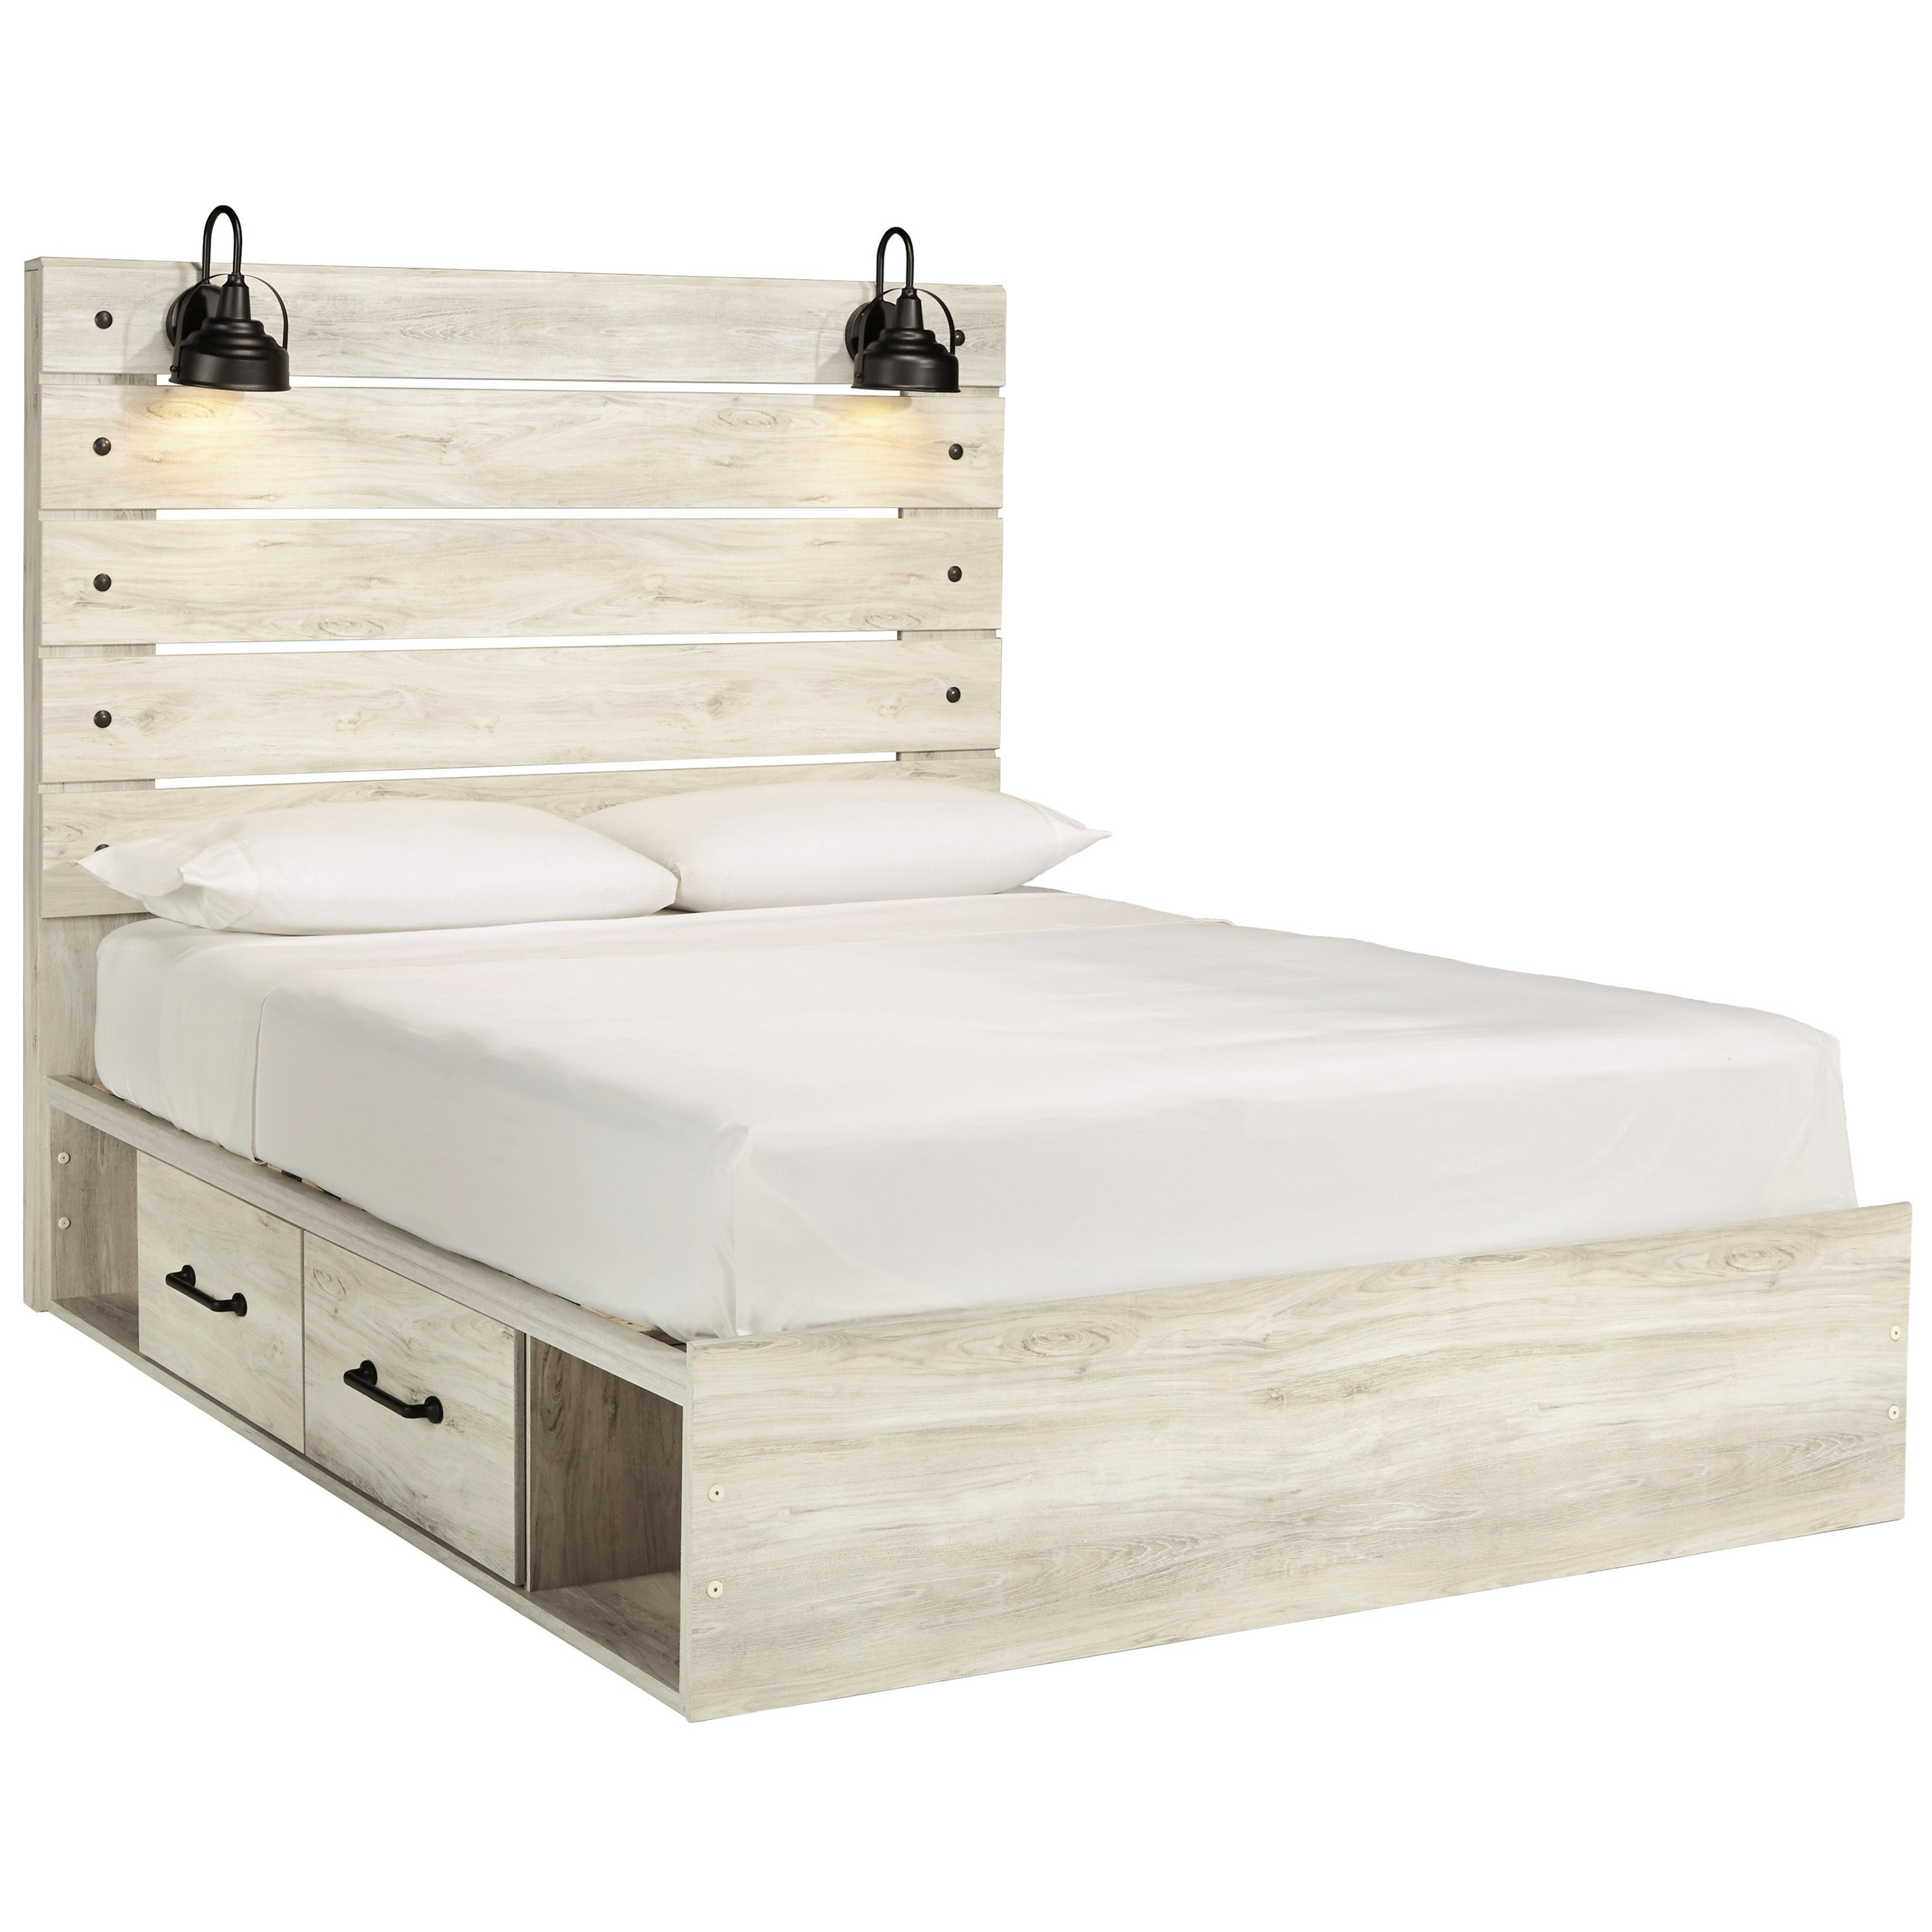 Signature Design By Ashley Cambeck Rustic Queen Storage Bed With 2 Drawers Industrial Lights Royal Furniture Platform Beds Low Profile Beds